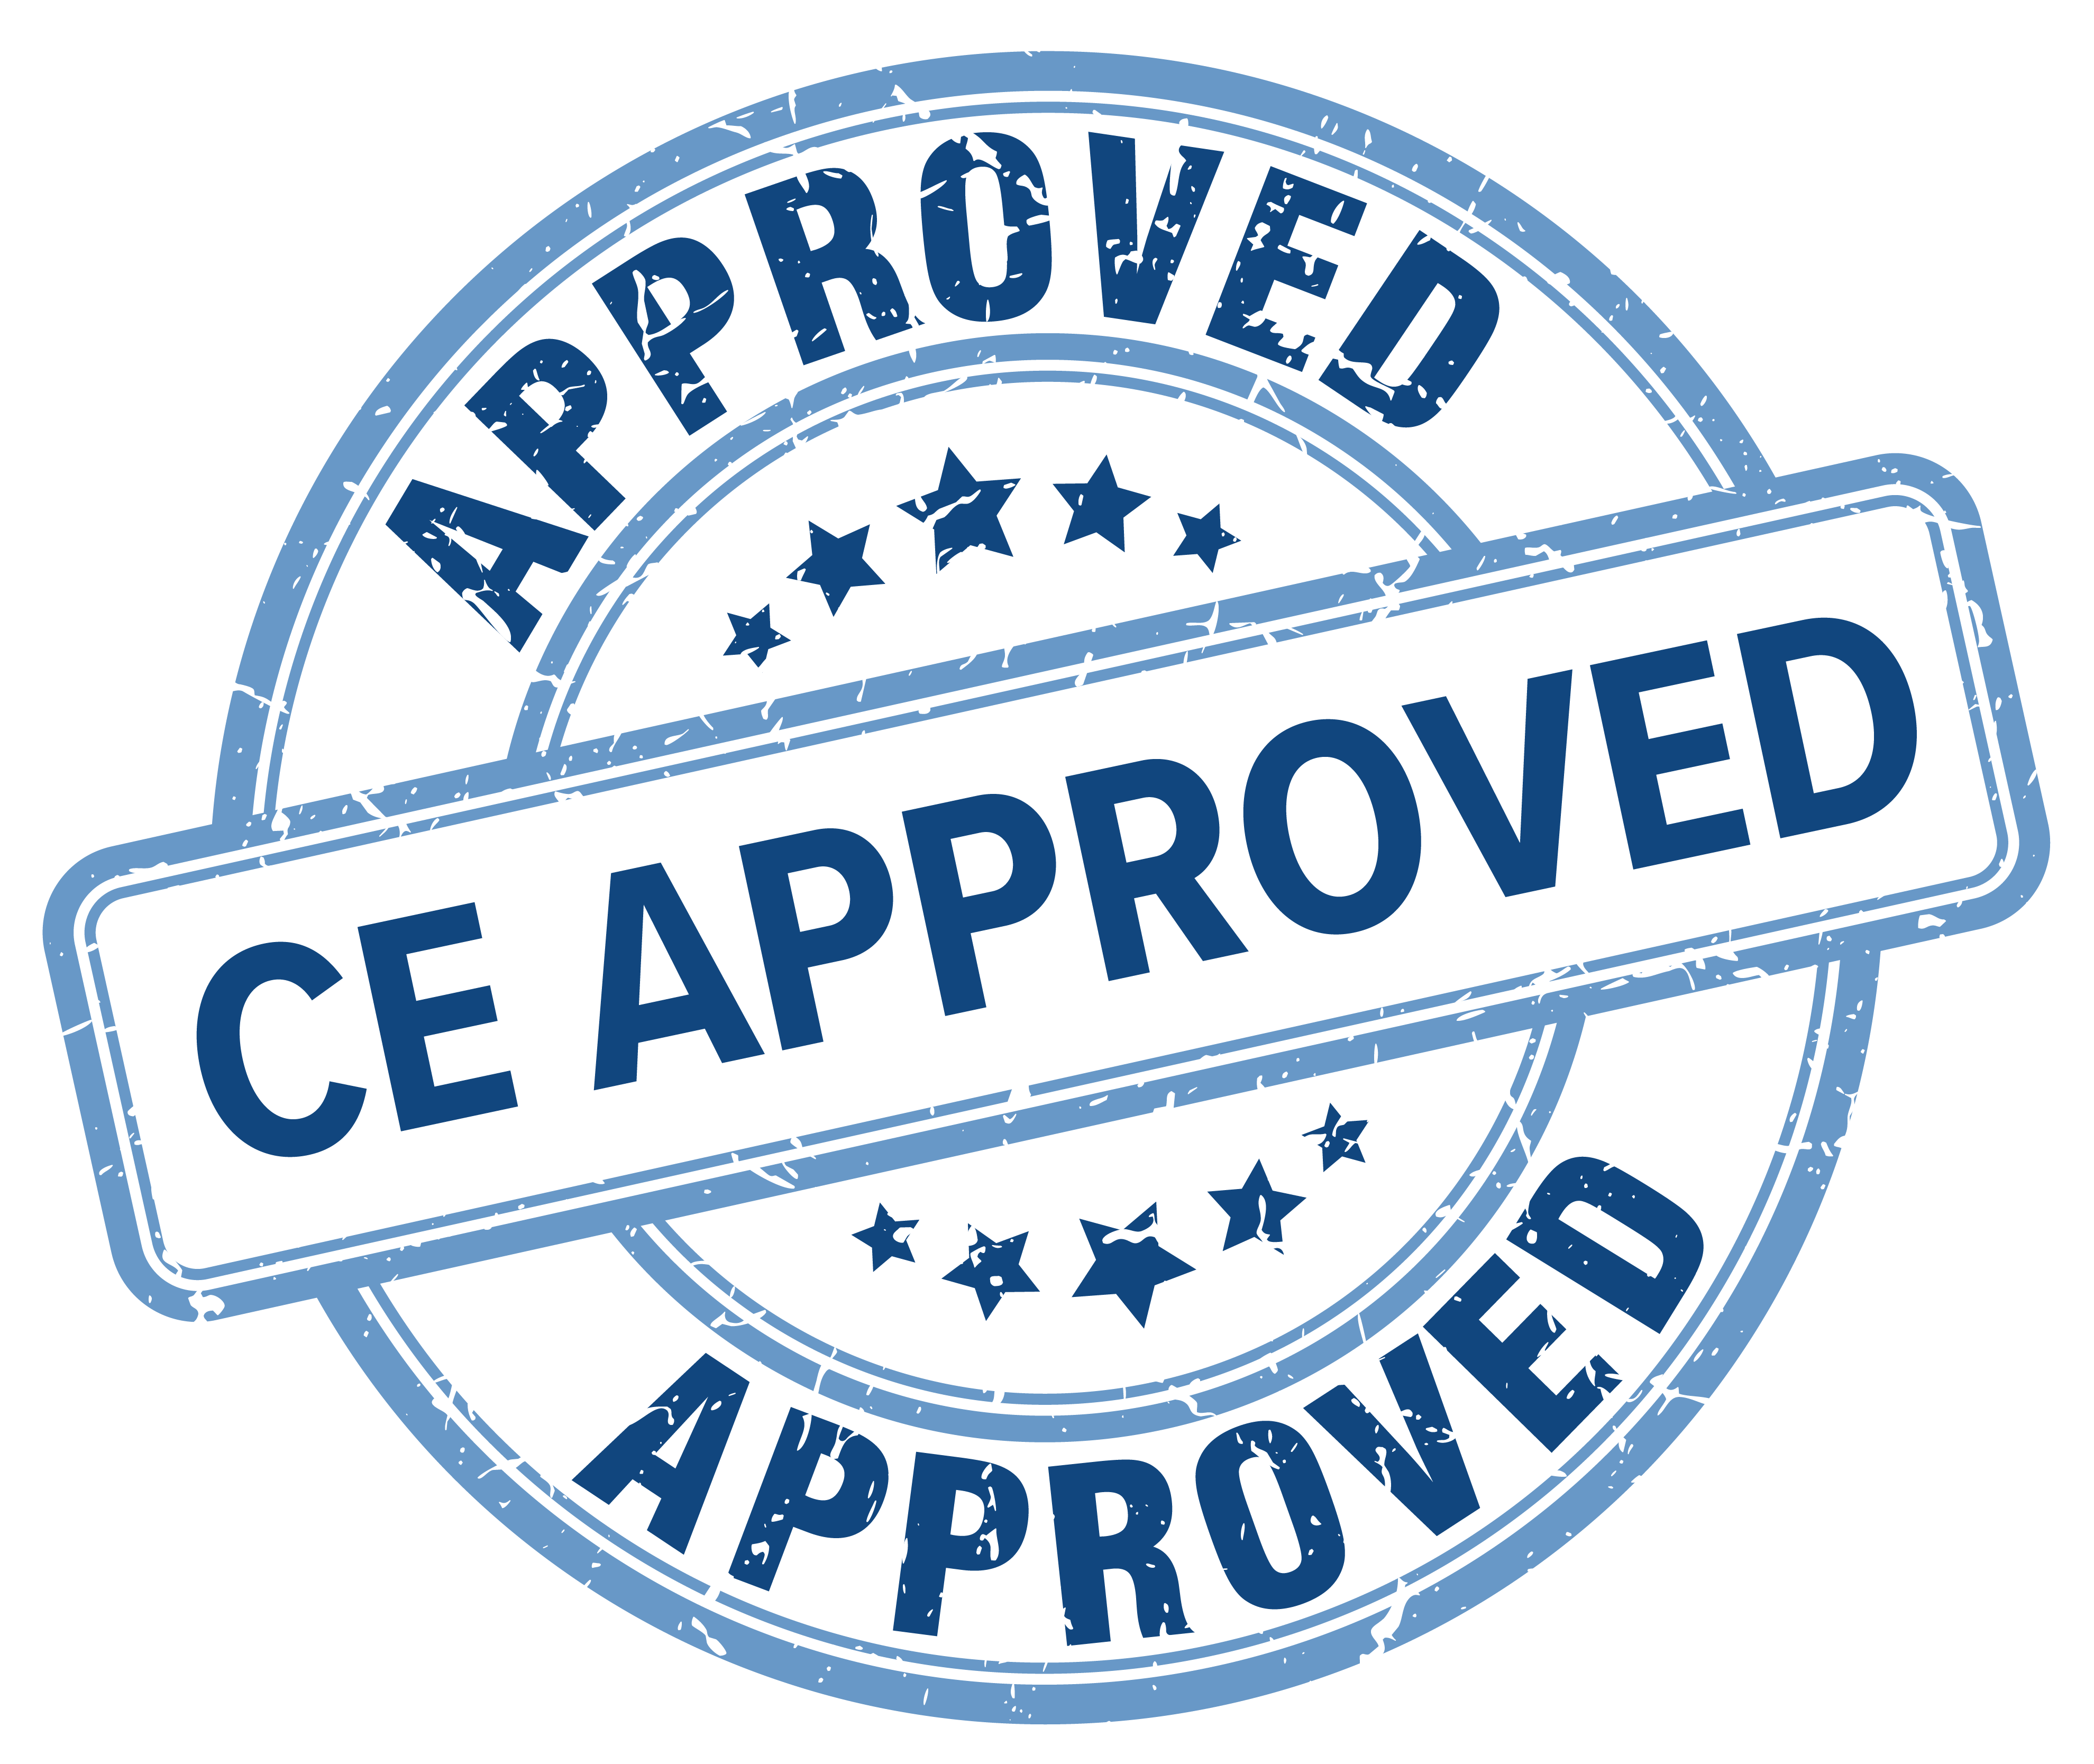 CE approval seal